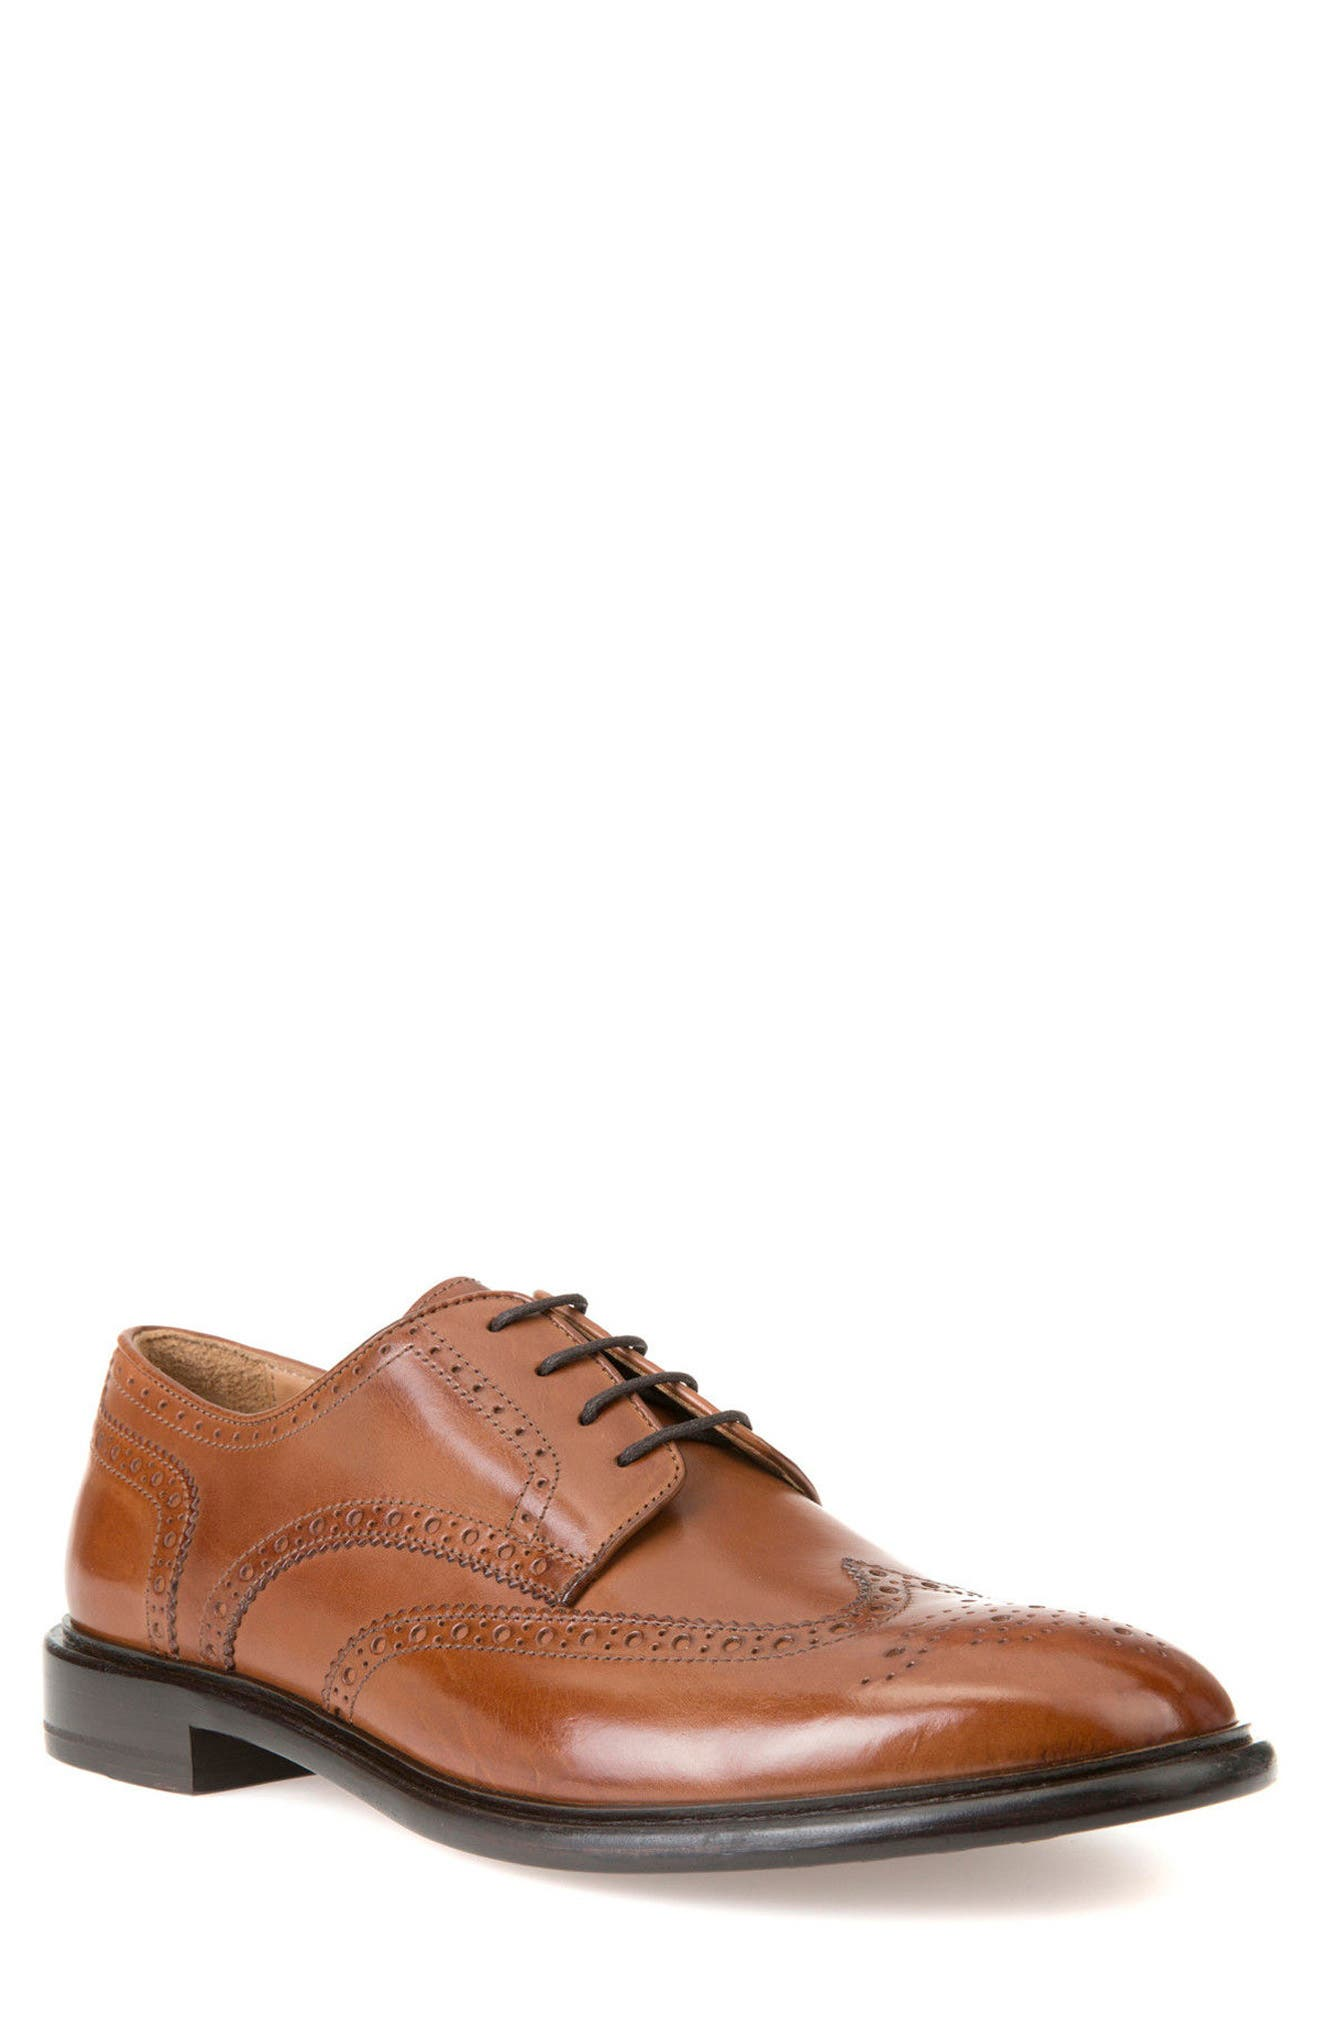 Guildford 4 Wingtip,                             Main thumbnail 1, color,                             Dark Cognac Leather